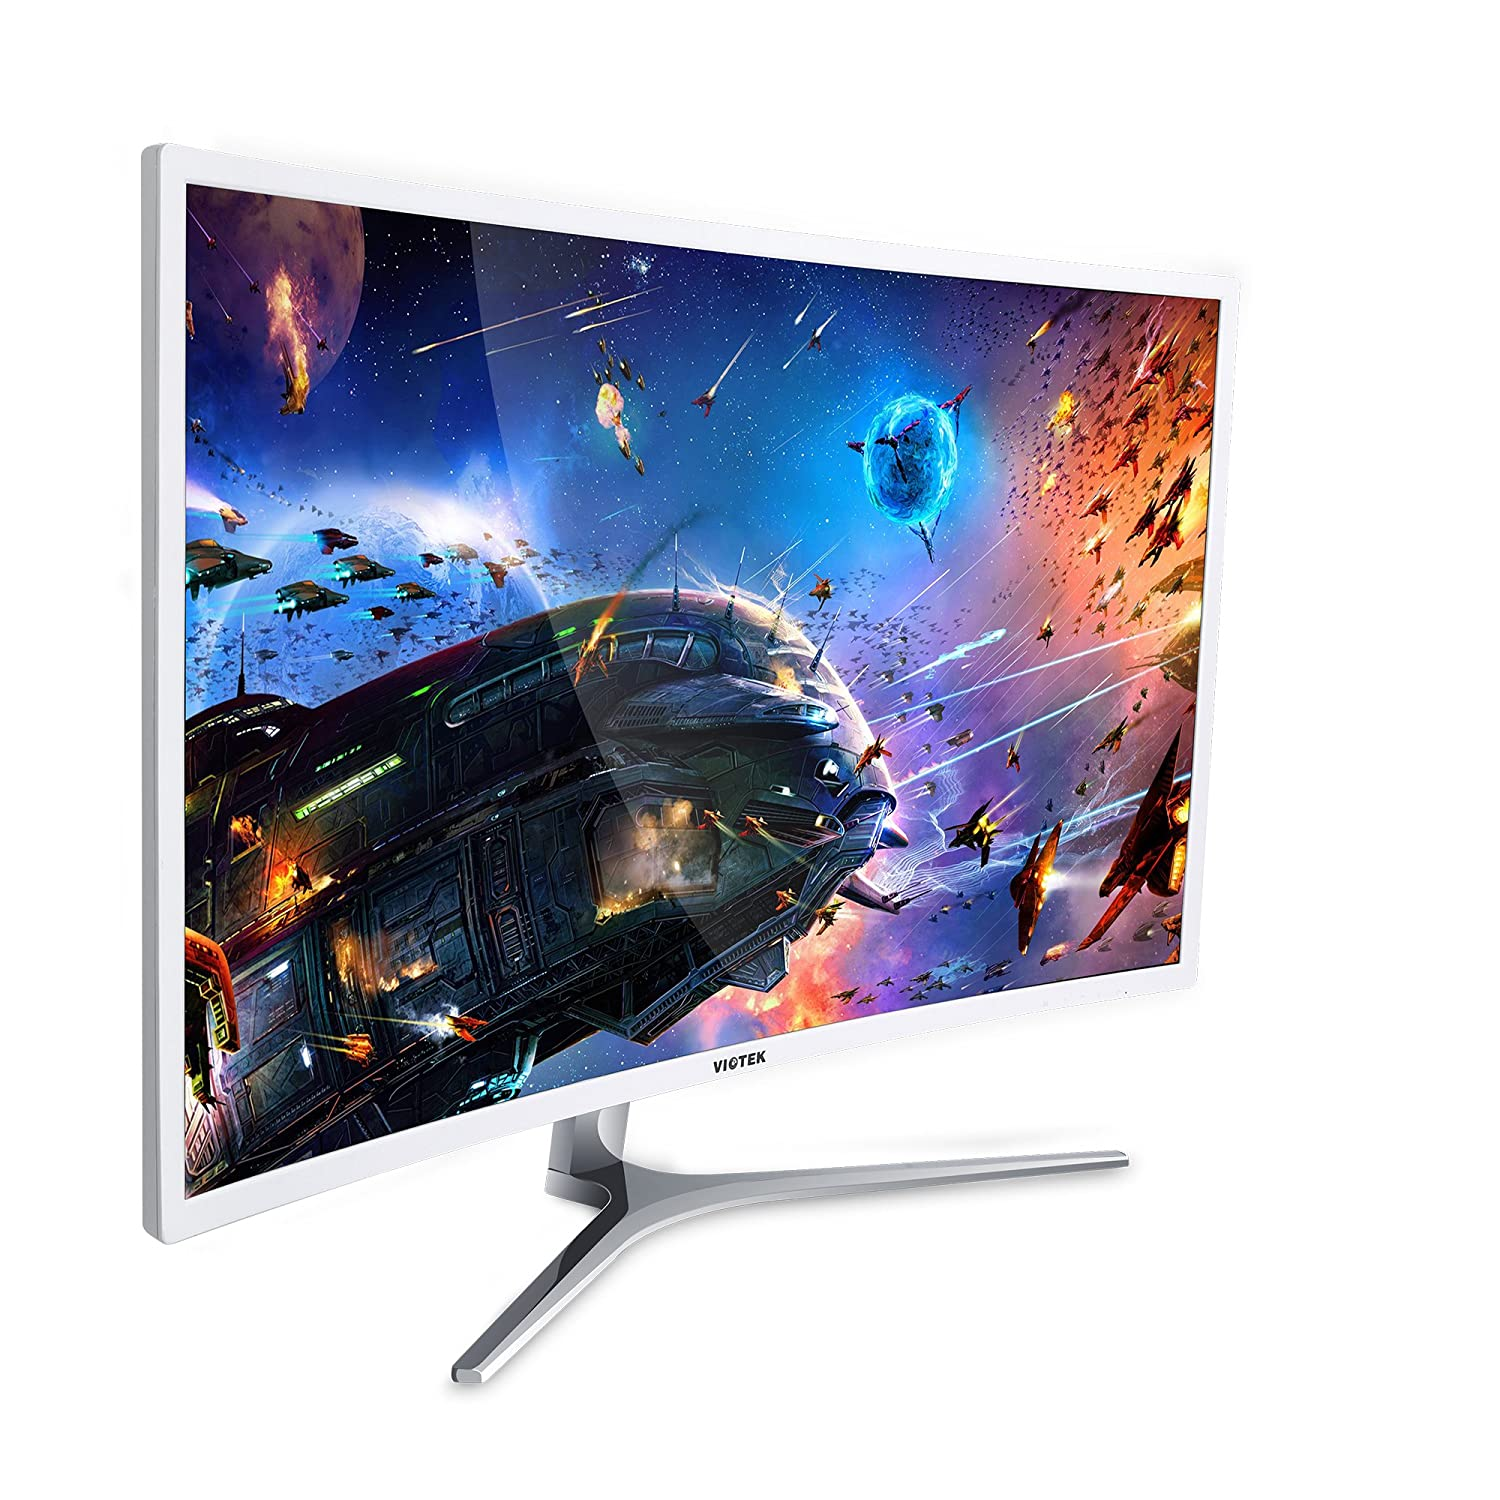 Viotek 32 inch LED Curved Computer Monitor with Speakers - 1920x1080p Full HD, VGA DVI and HDMI, 1800R Curvature, Model NB32C